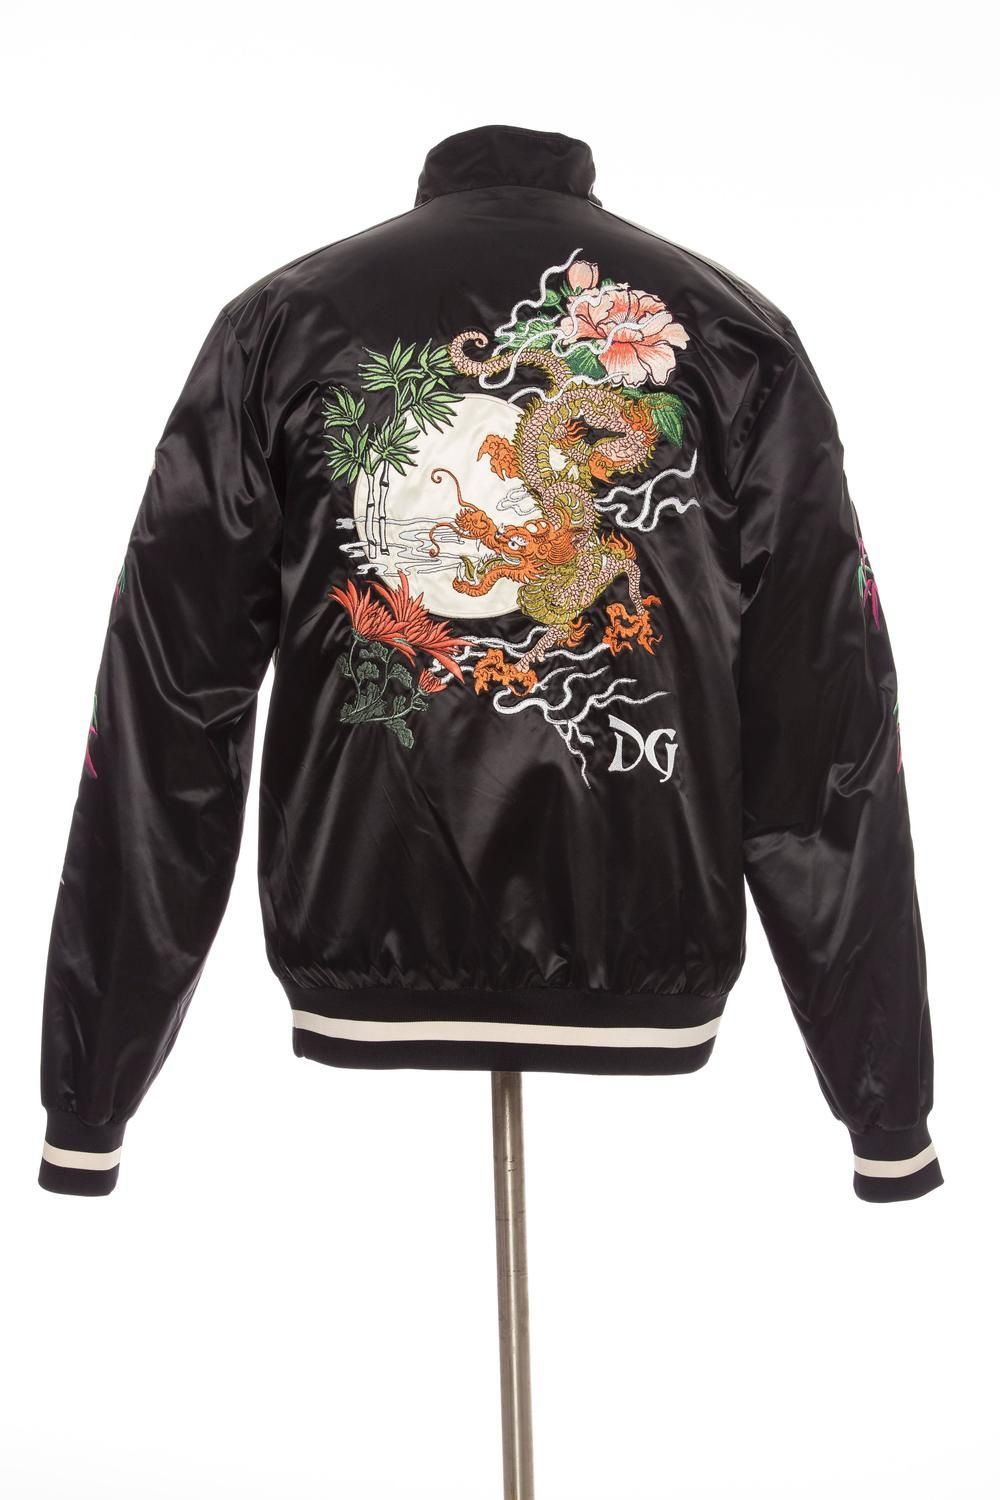 5ff075c02 Dolce and Gabbana Men's Black Satin Floral And Dragon Embroidered ...